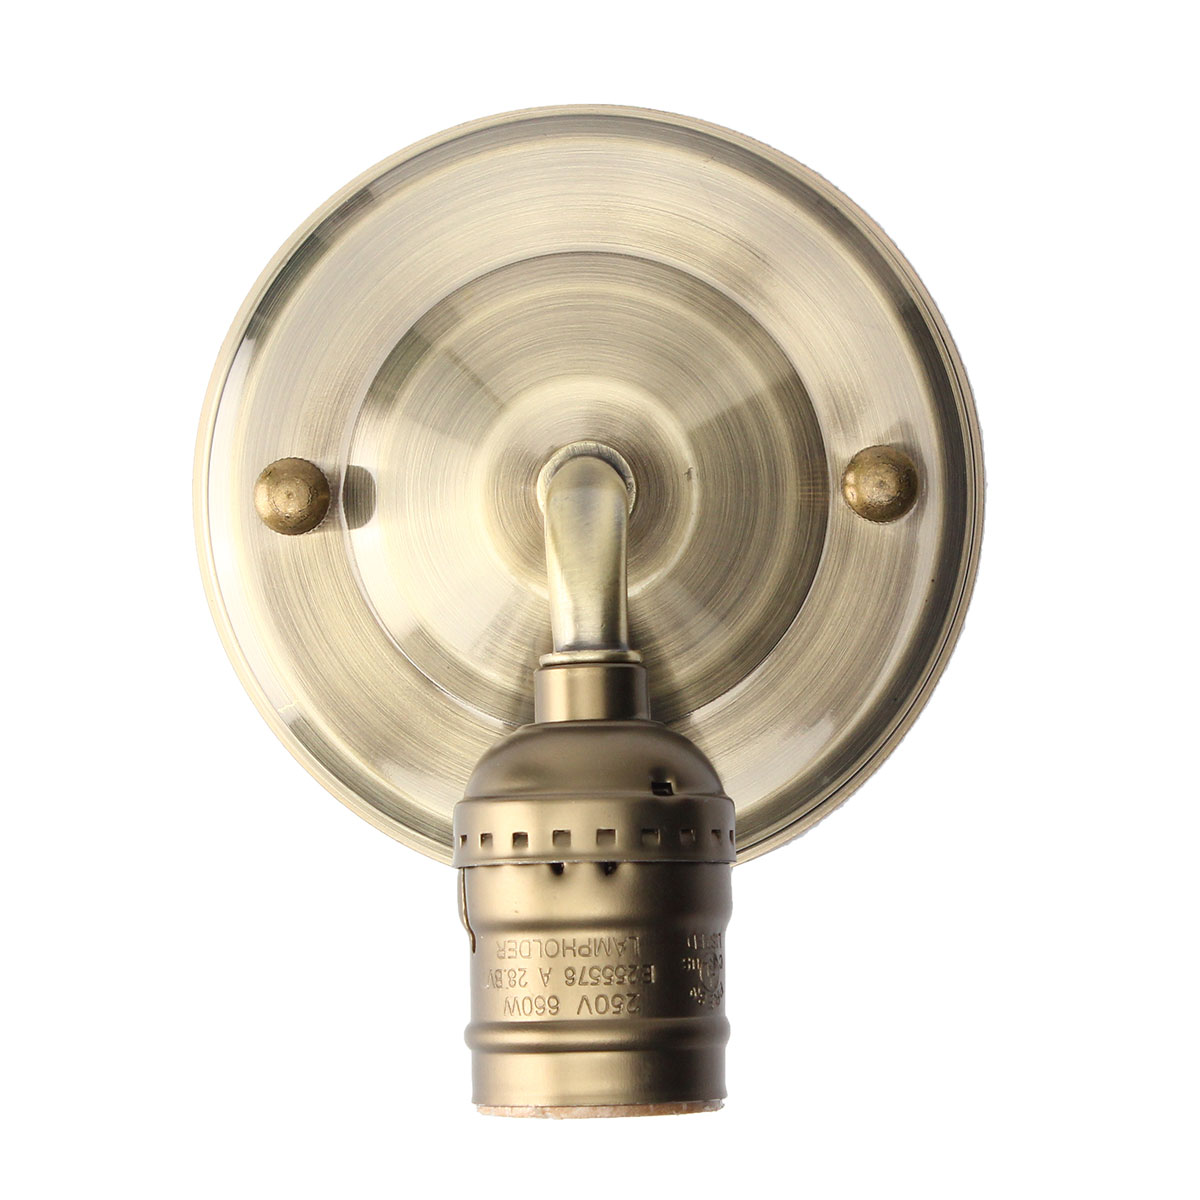 E27 Antique Vintage Wall Light Simple Design Sconce Lamp Bulb Socket ... for Bulb Holder Design  45ifm